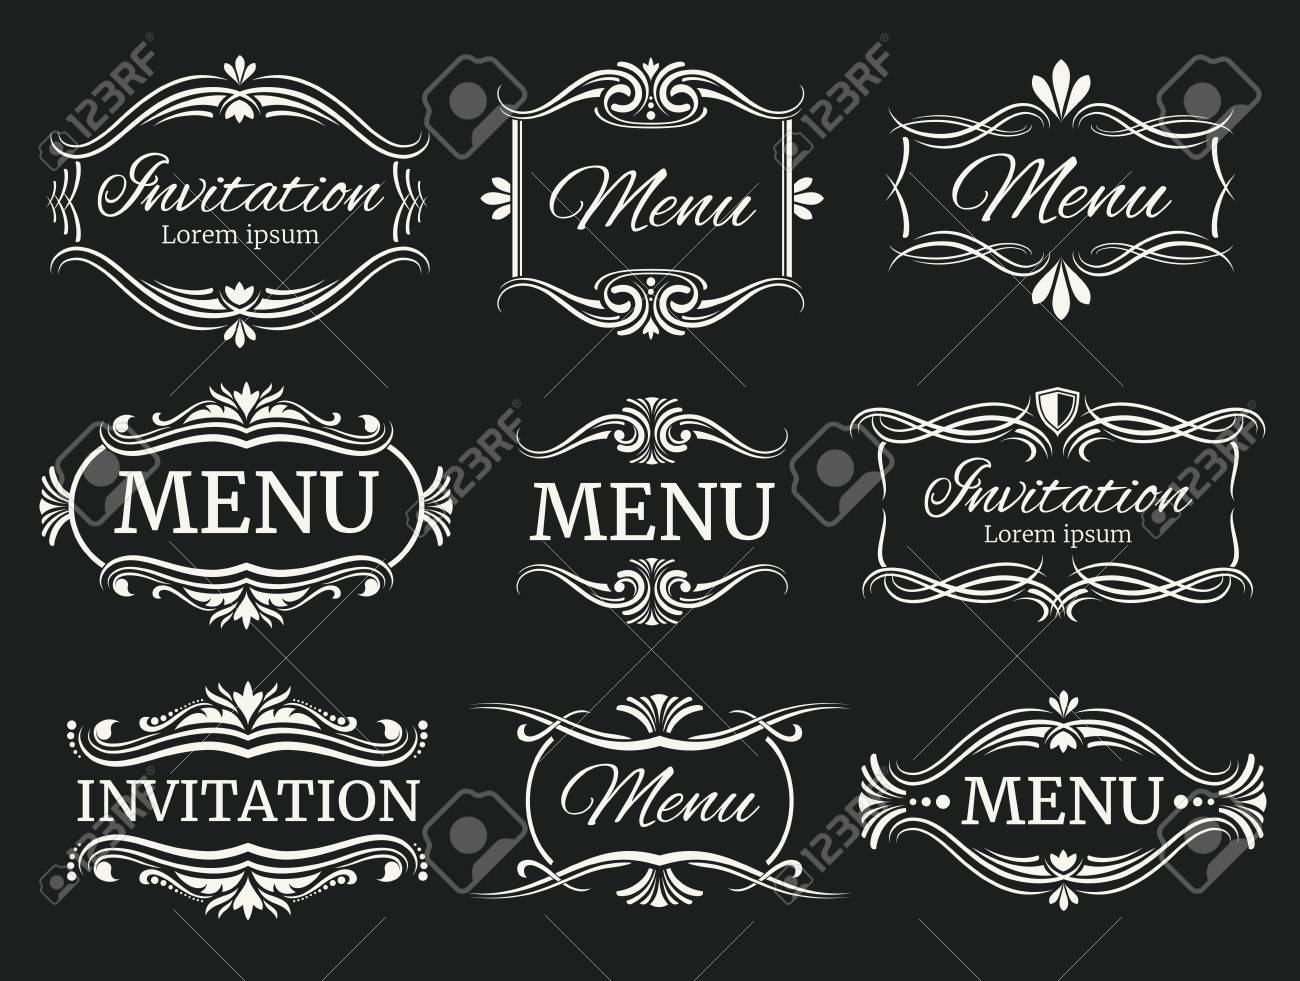 Calligraphic decorative vector frames for menu and wedding calligraphic decorative vector frames for menu and wedding invitation calligraphic frame for wedding and invitation junglespirit Image collections